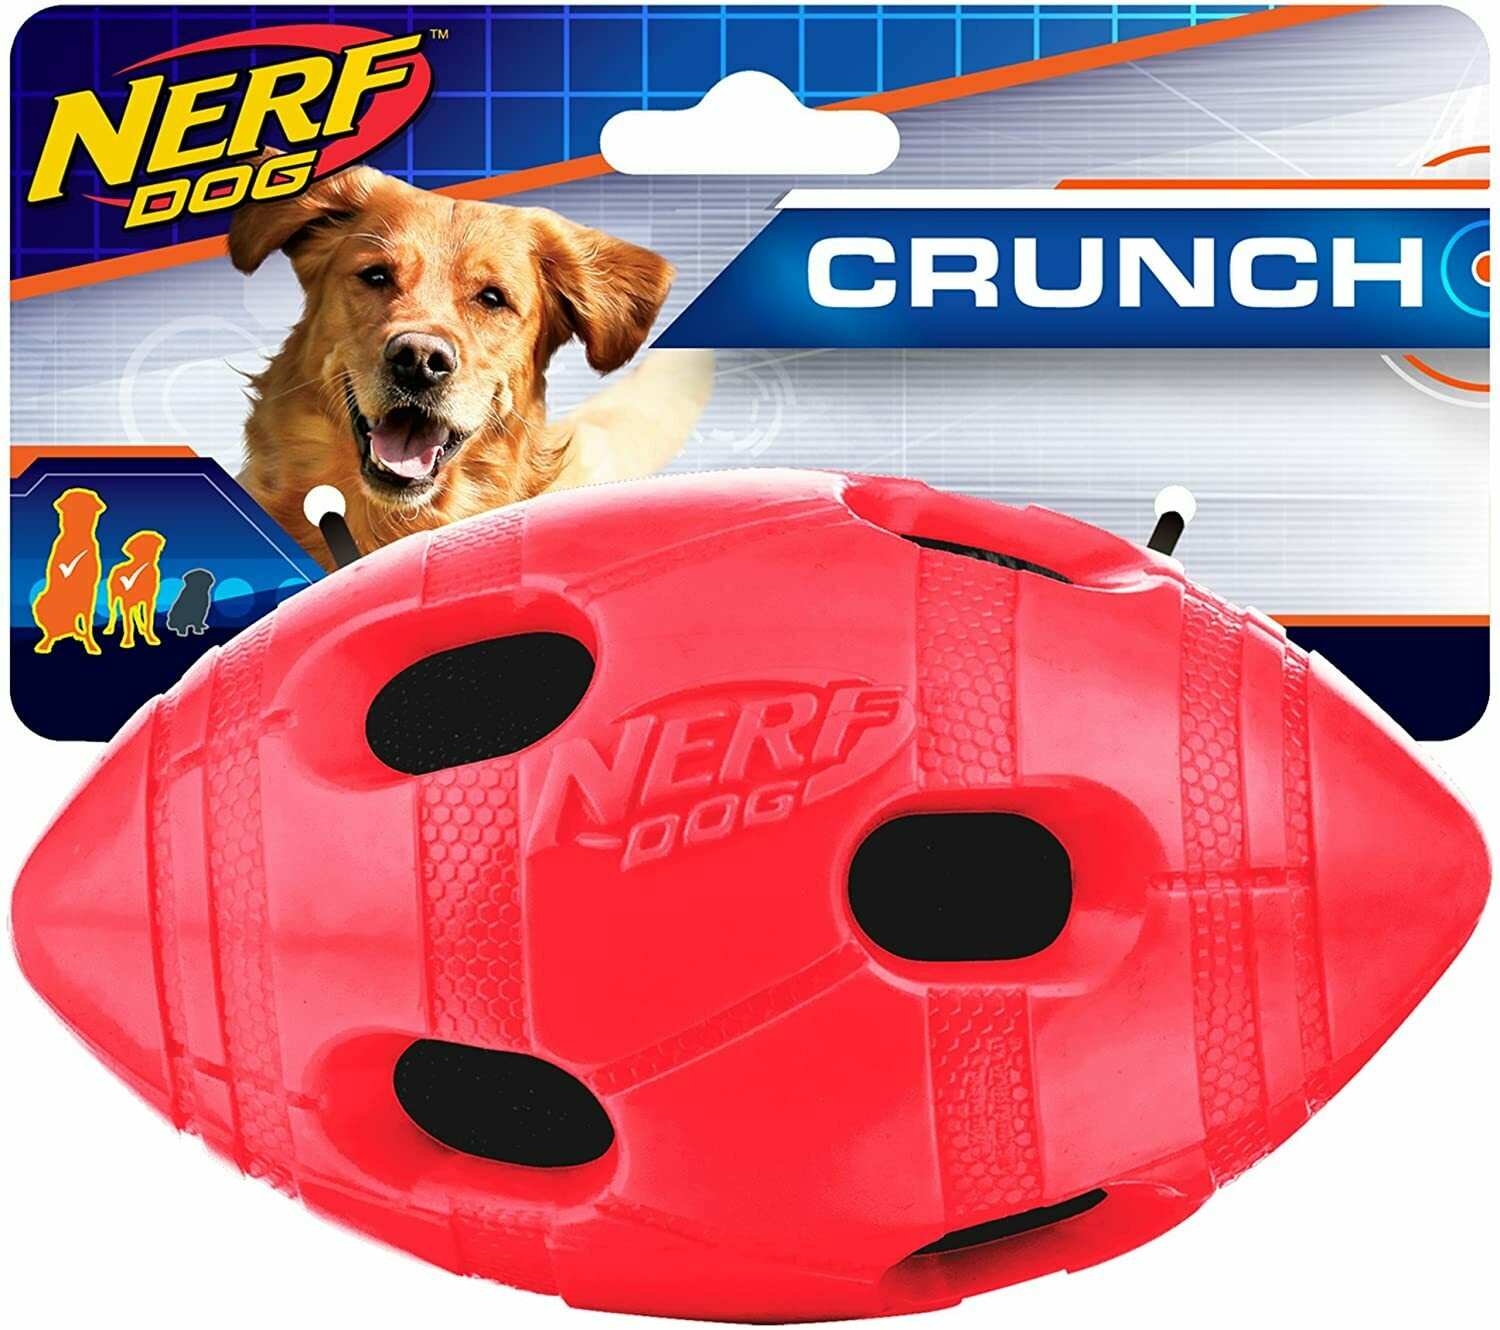 NERF Dog Small Crunchable Football Toy